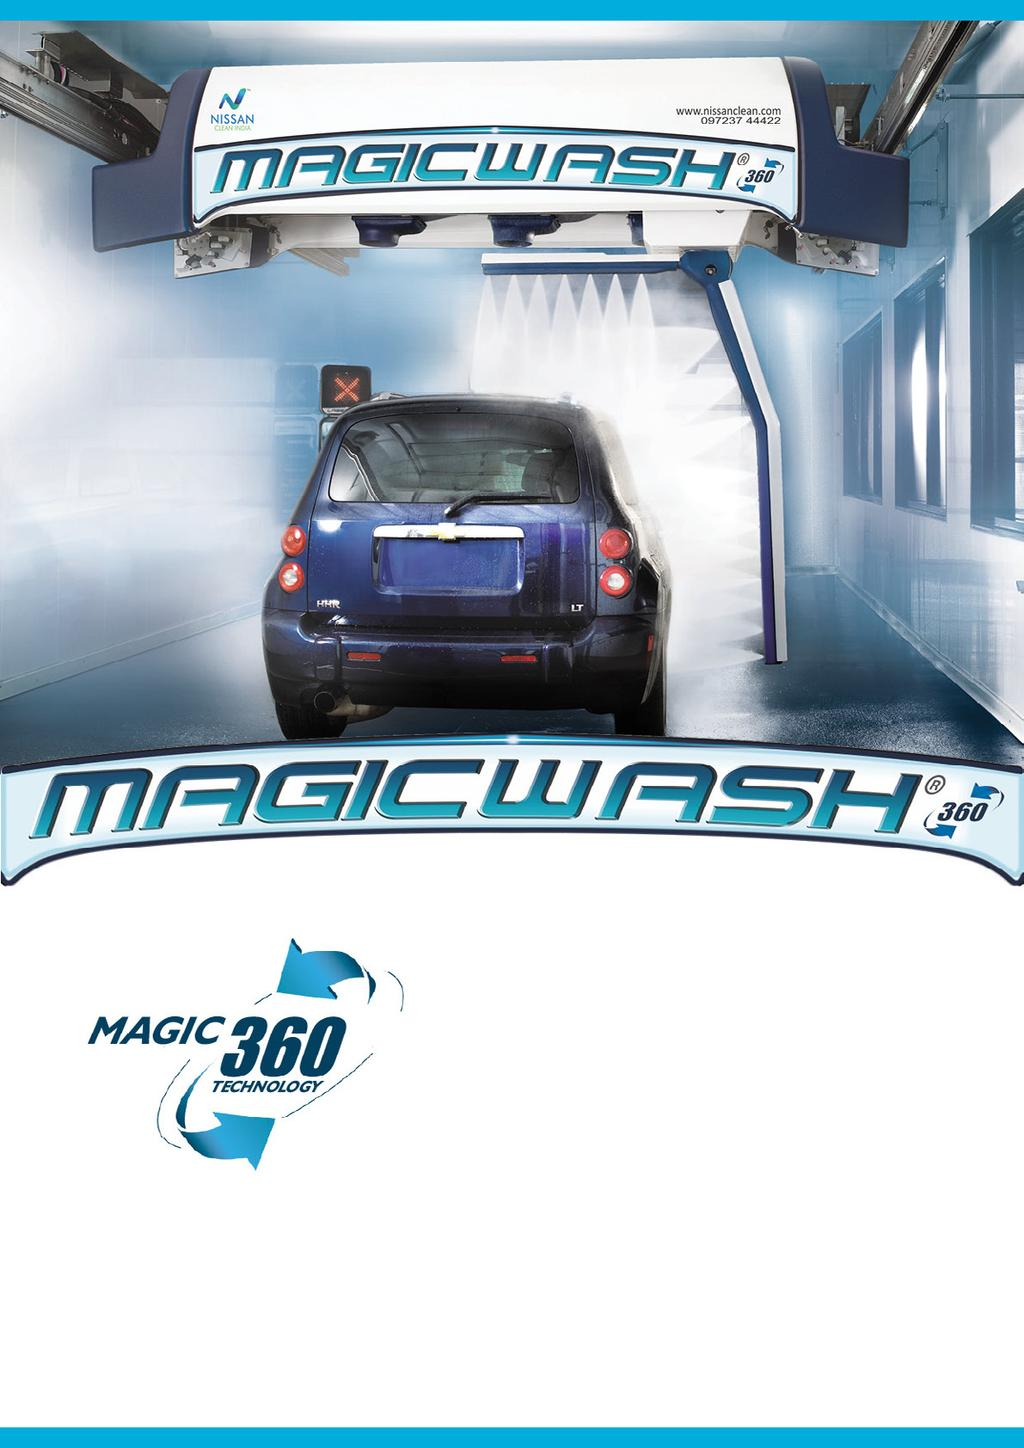 TOUCH FREE IN-BAY AUTOMATIC CAR WASH SYSTEM The newest MagicWash 360 raises the standard for touch free automatic car wash systems.